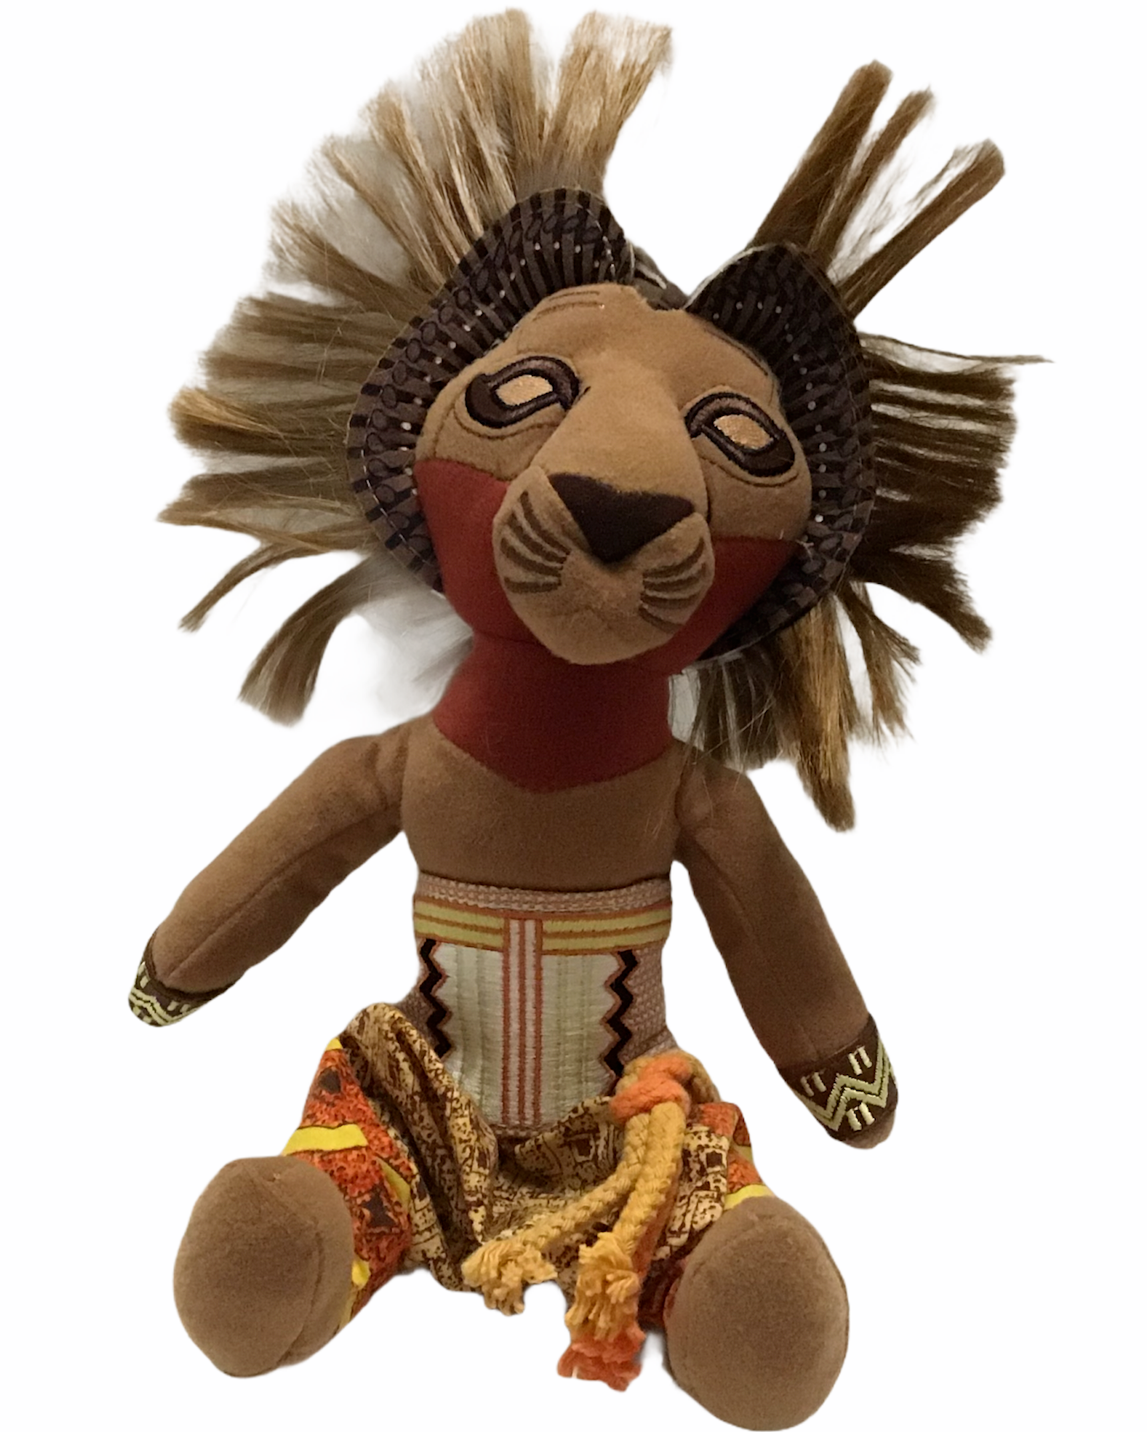 Primary image for Disney The Lion King Simba Original Broadway Musical Limited Edition Plush 12""